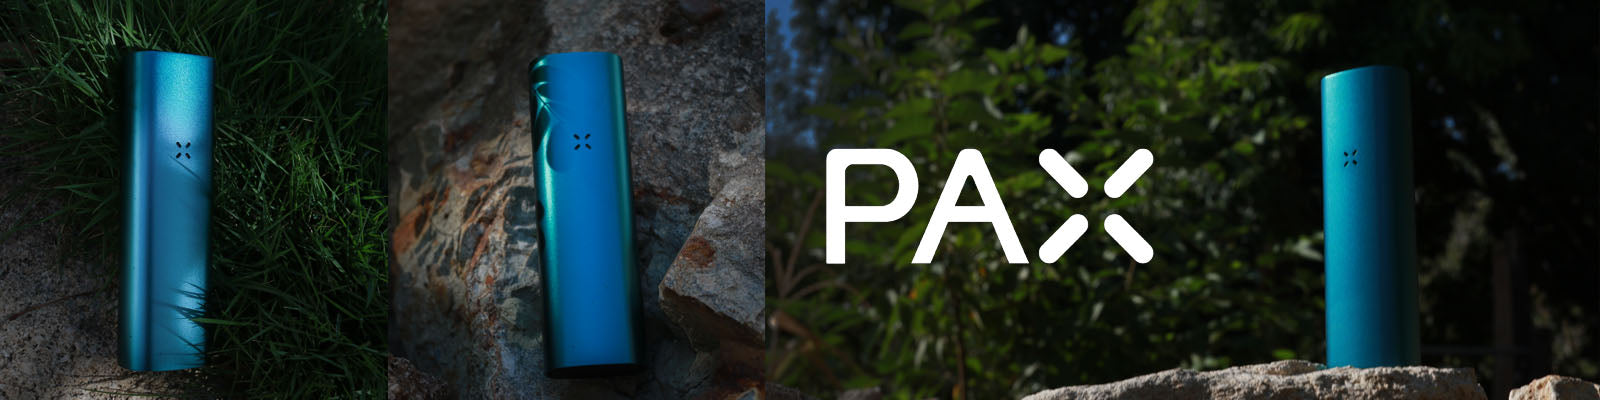 Pax Vaporizers - Free Shipping & Best Price - Authorized Sellers - Canada